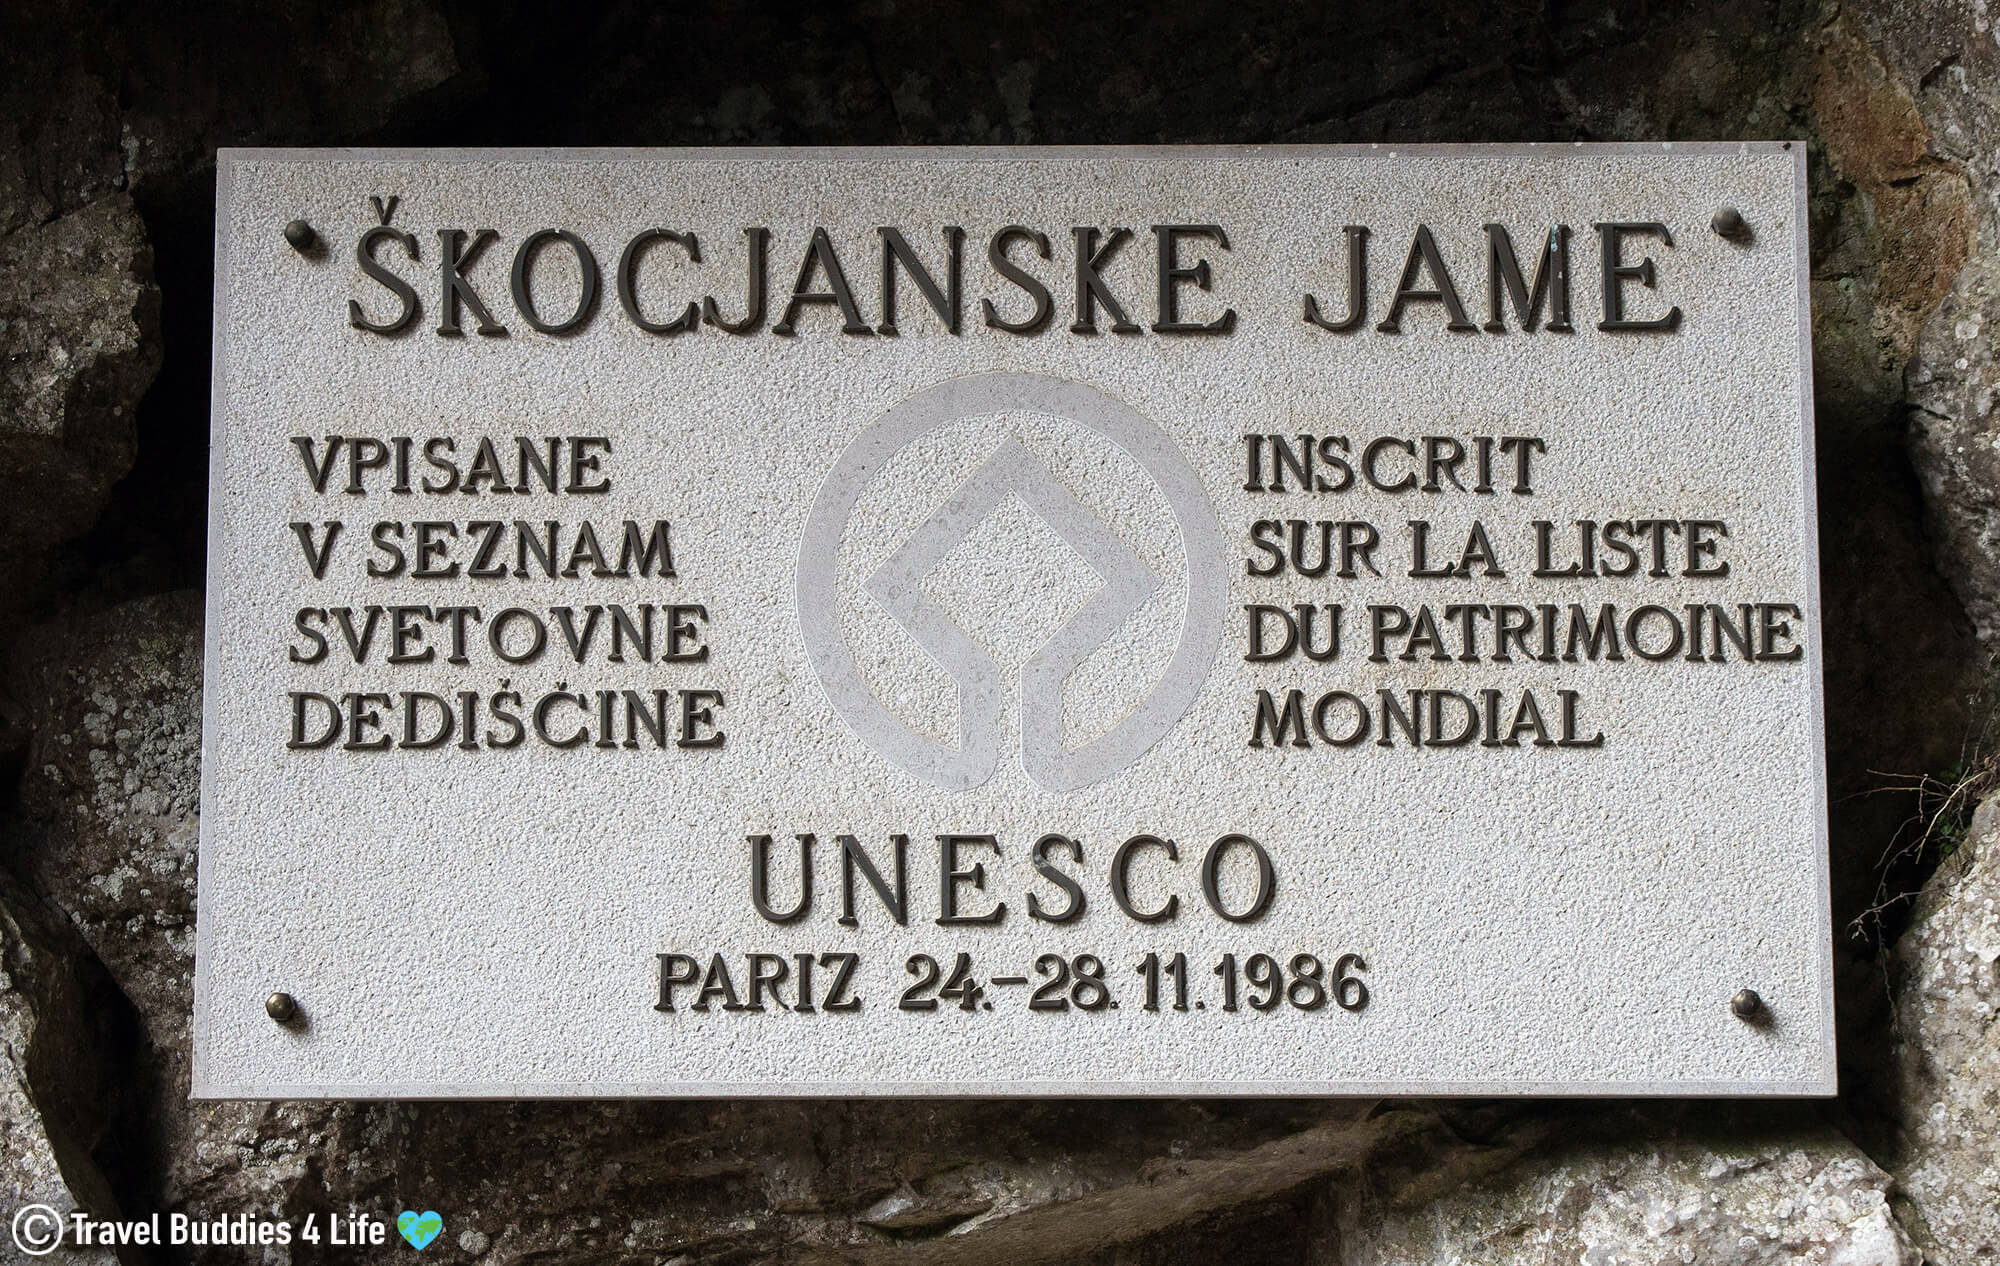 A Large Caving System in the East of Europe called the Skocjanske Jame Caves in Slovenia